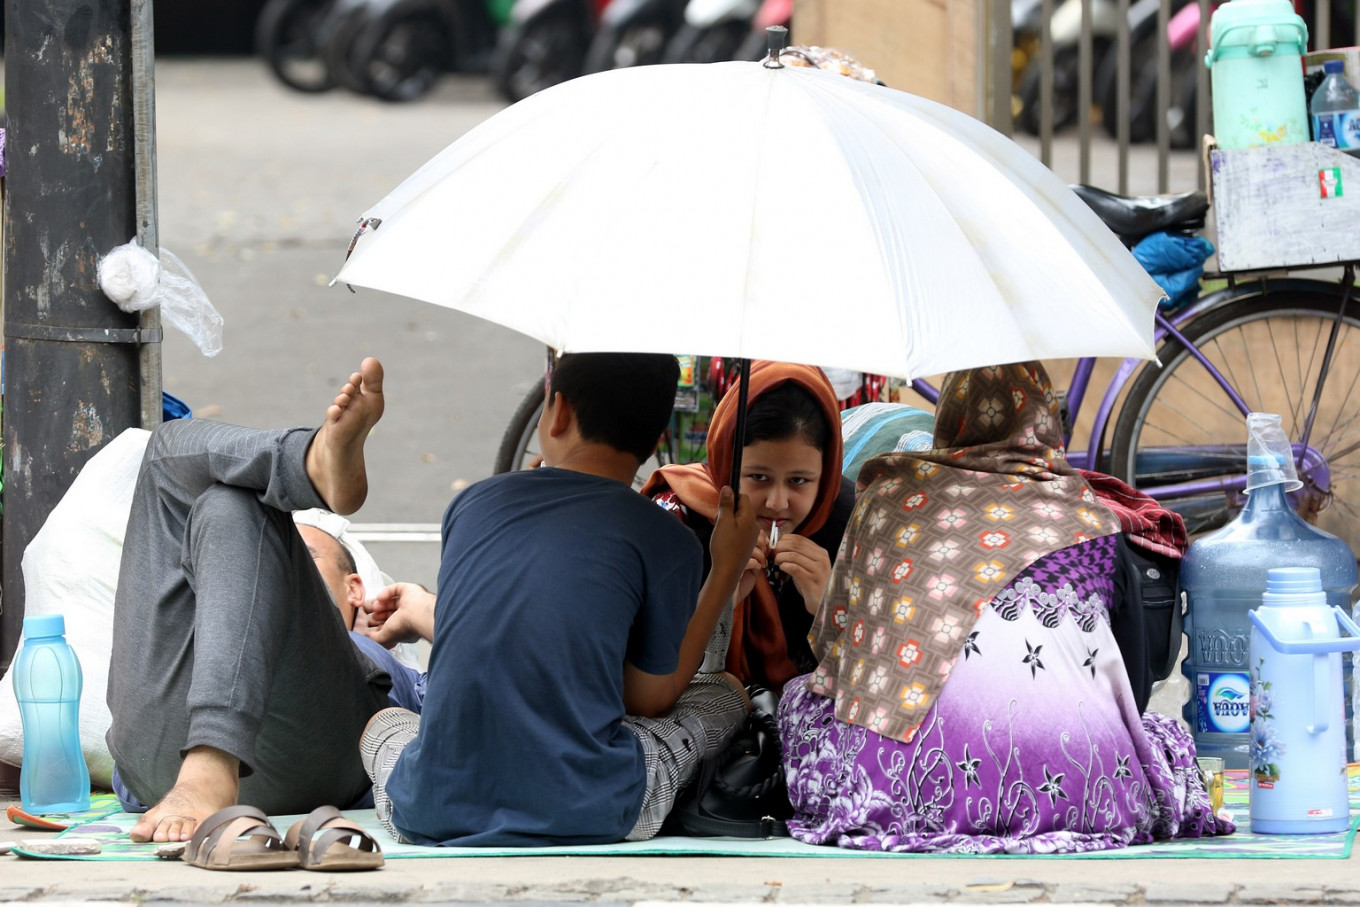 Asylum seekers refuse to move from Central Jakarta sidewalks